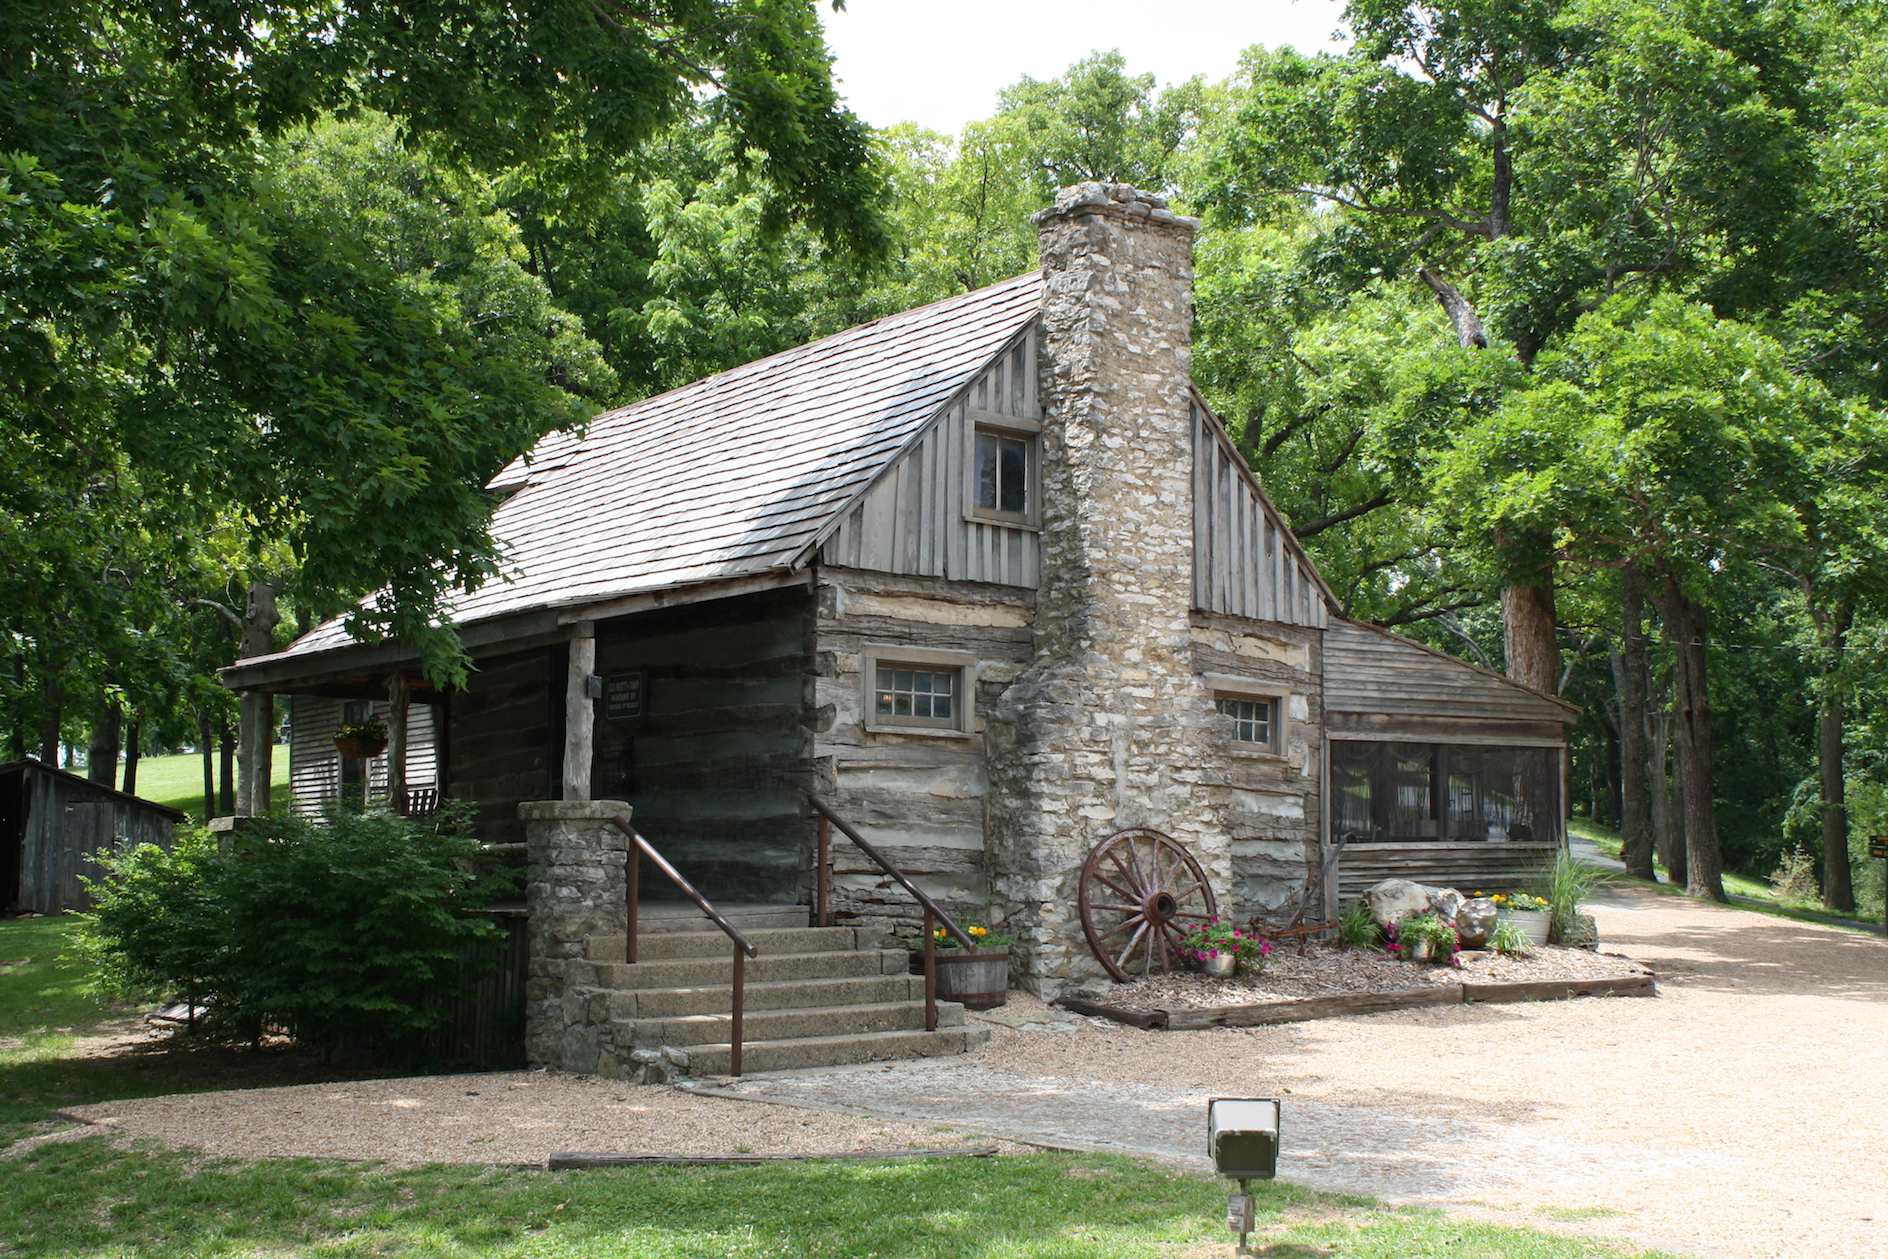 Large cottage with a big stone chimney